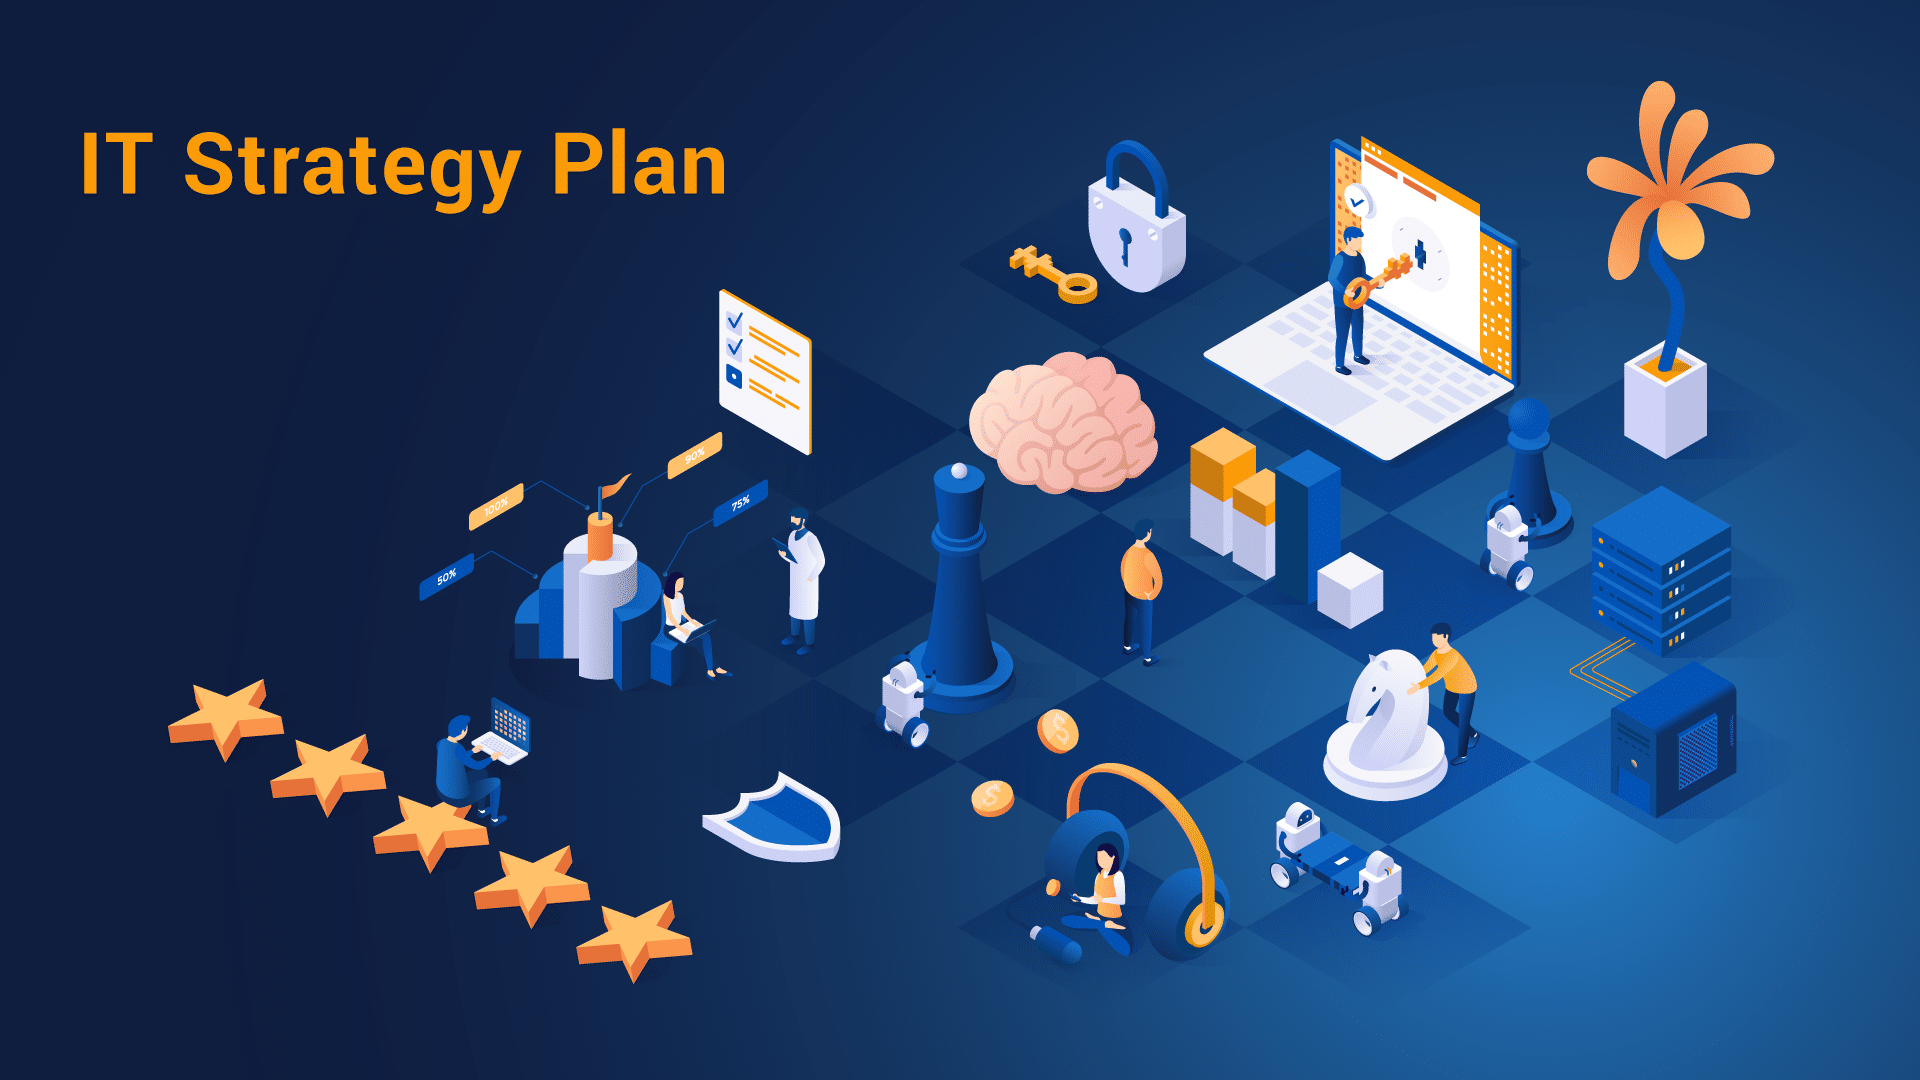 IT Strategy Plan